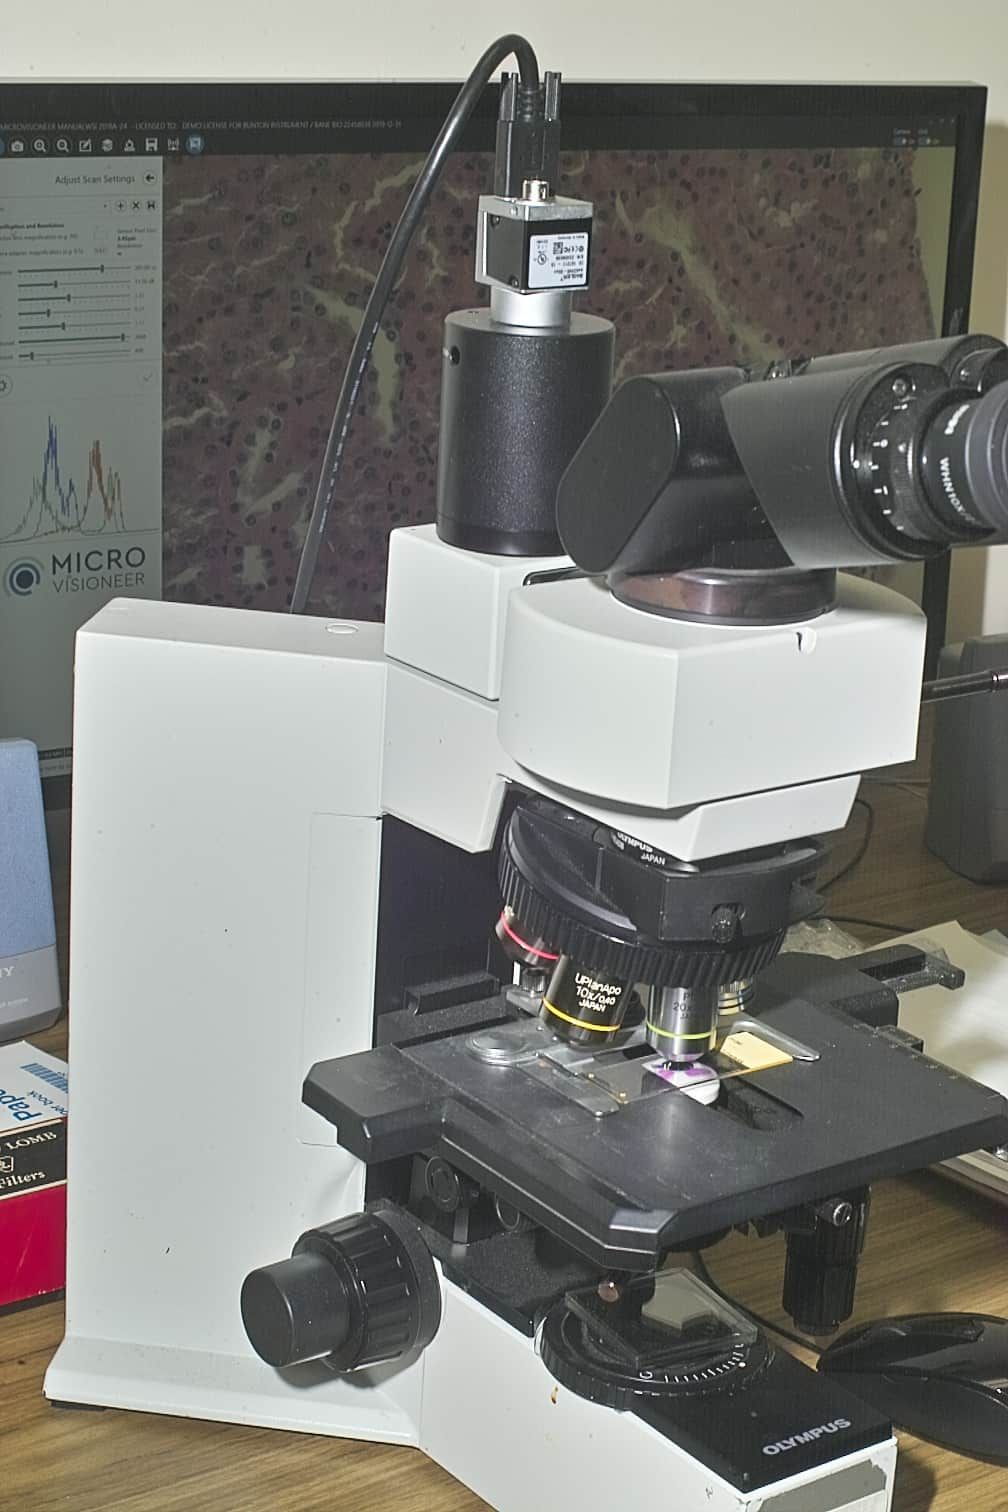 MICROSCOPE VIRTUAL IMAGE STITCHING SOFTWARE AND GLOBAL SHUTTER COLOR CAMERA